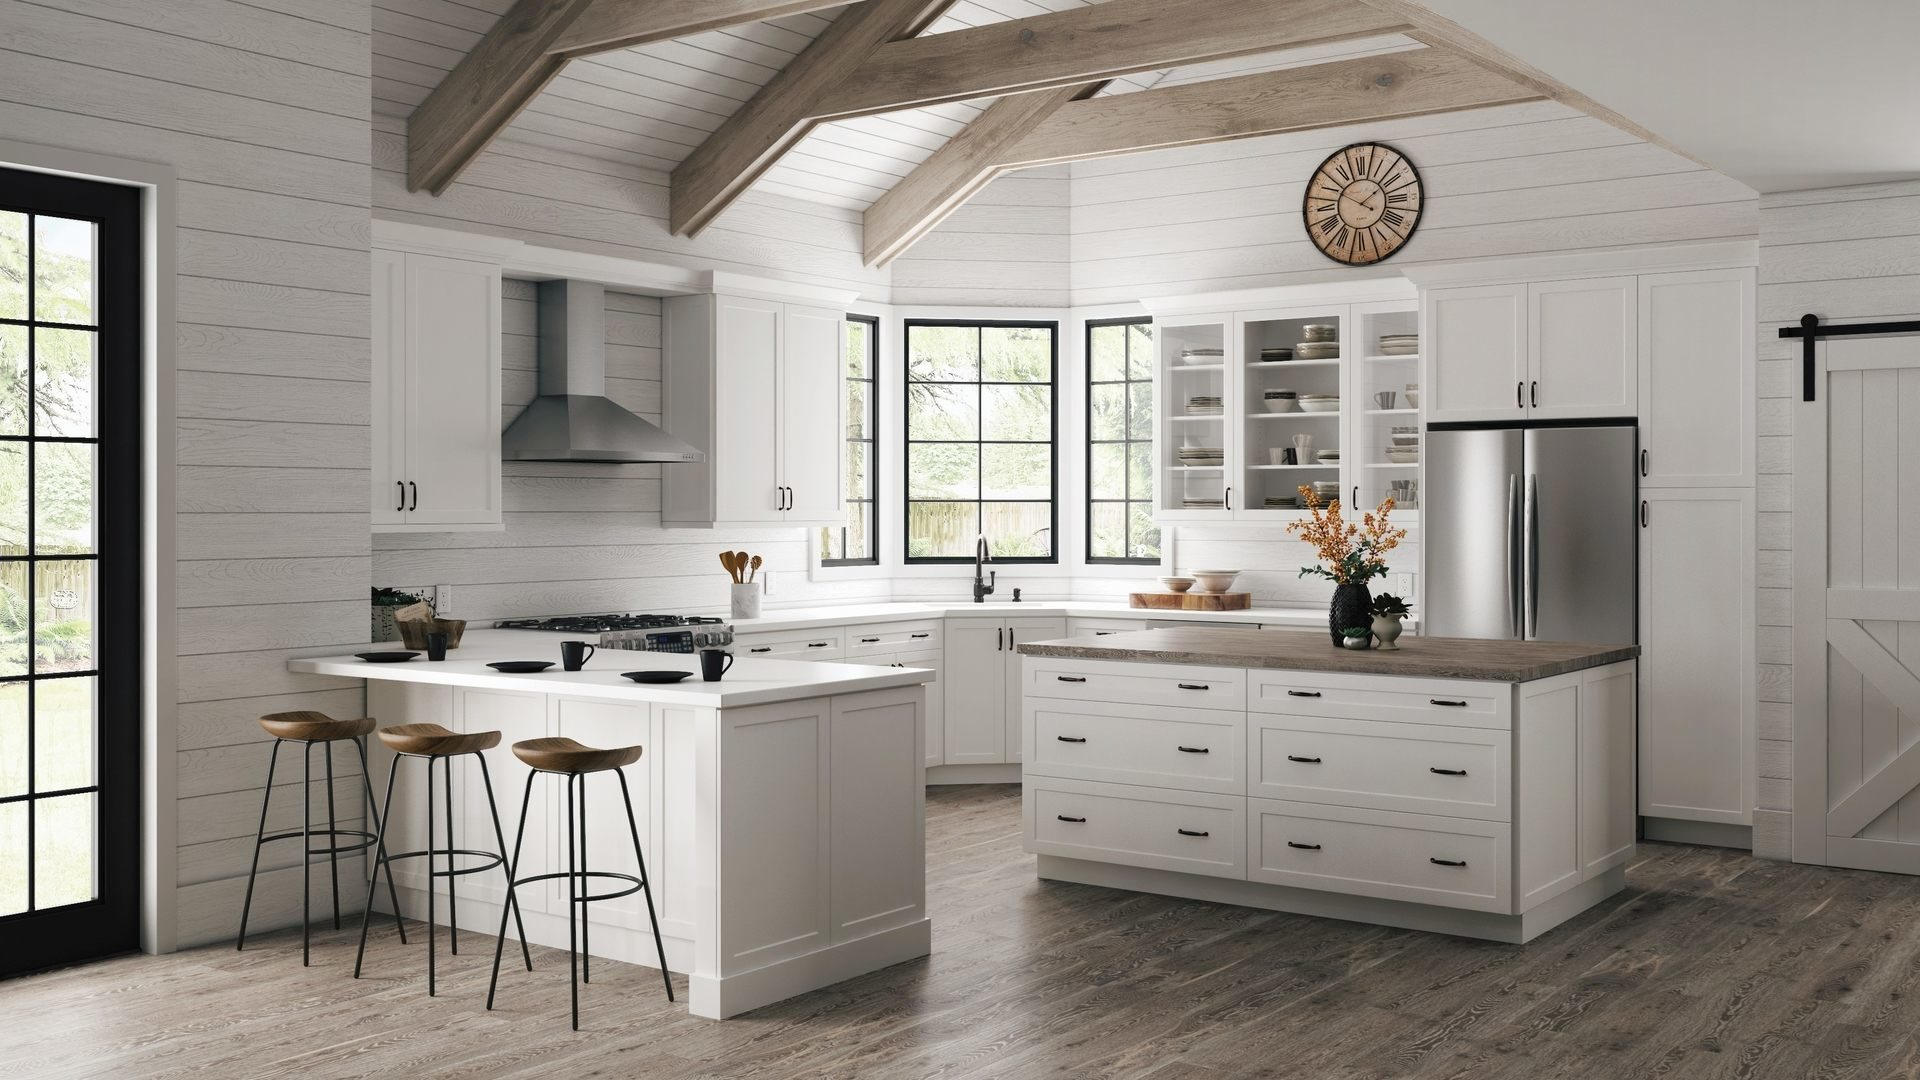 Melvern Double Oven Cabinets In White Kitchen The Home Depot